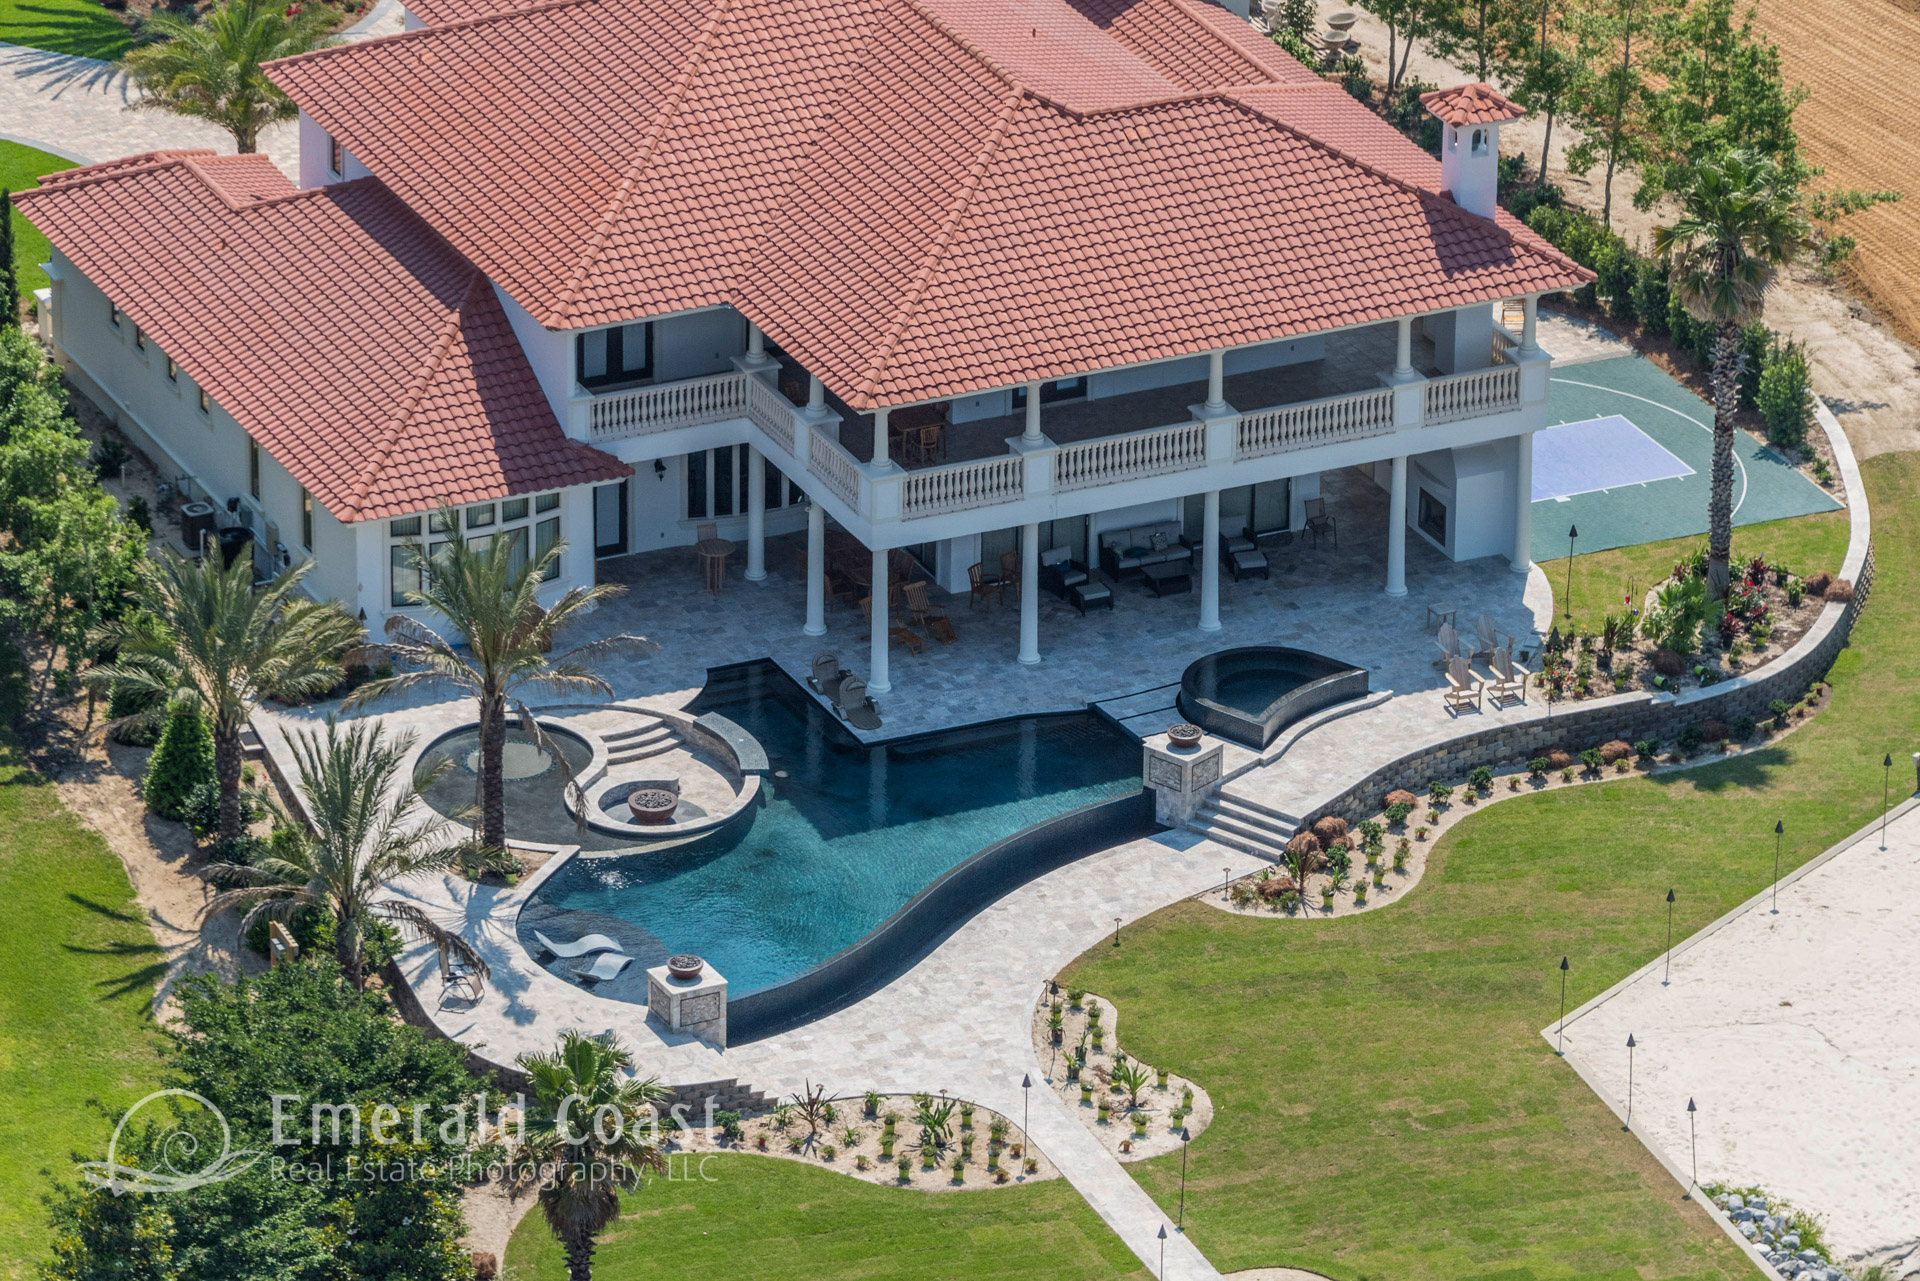 aerial photo of house with pool